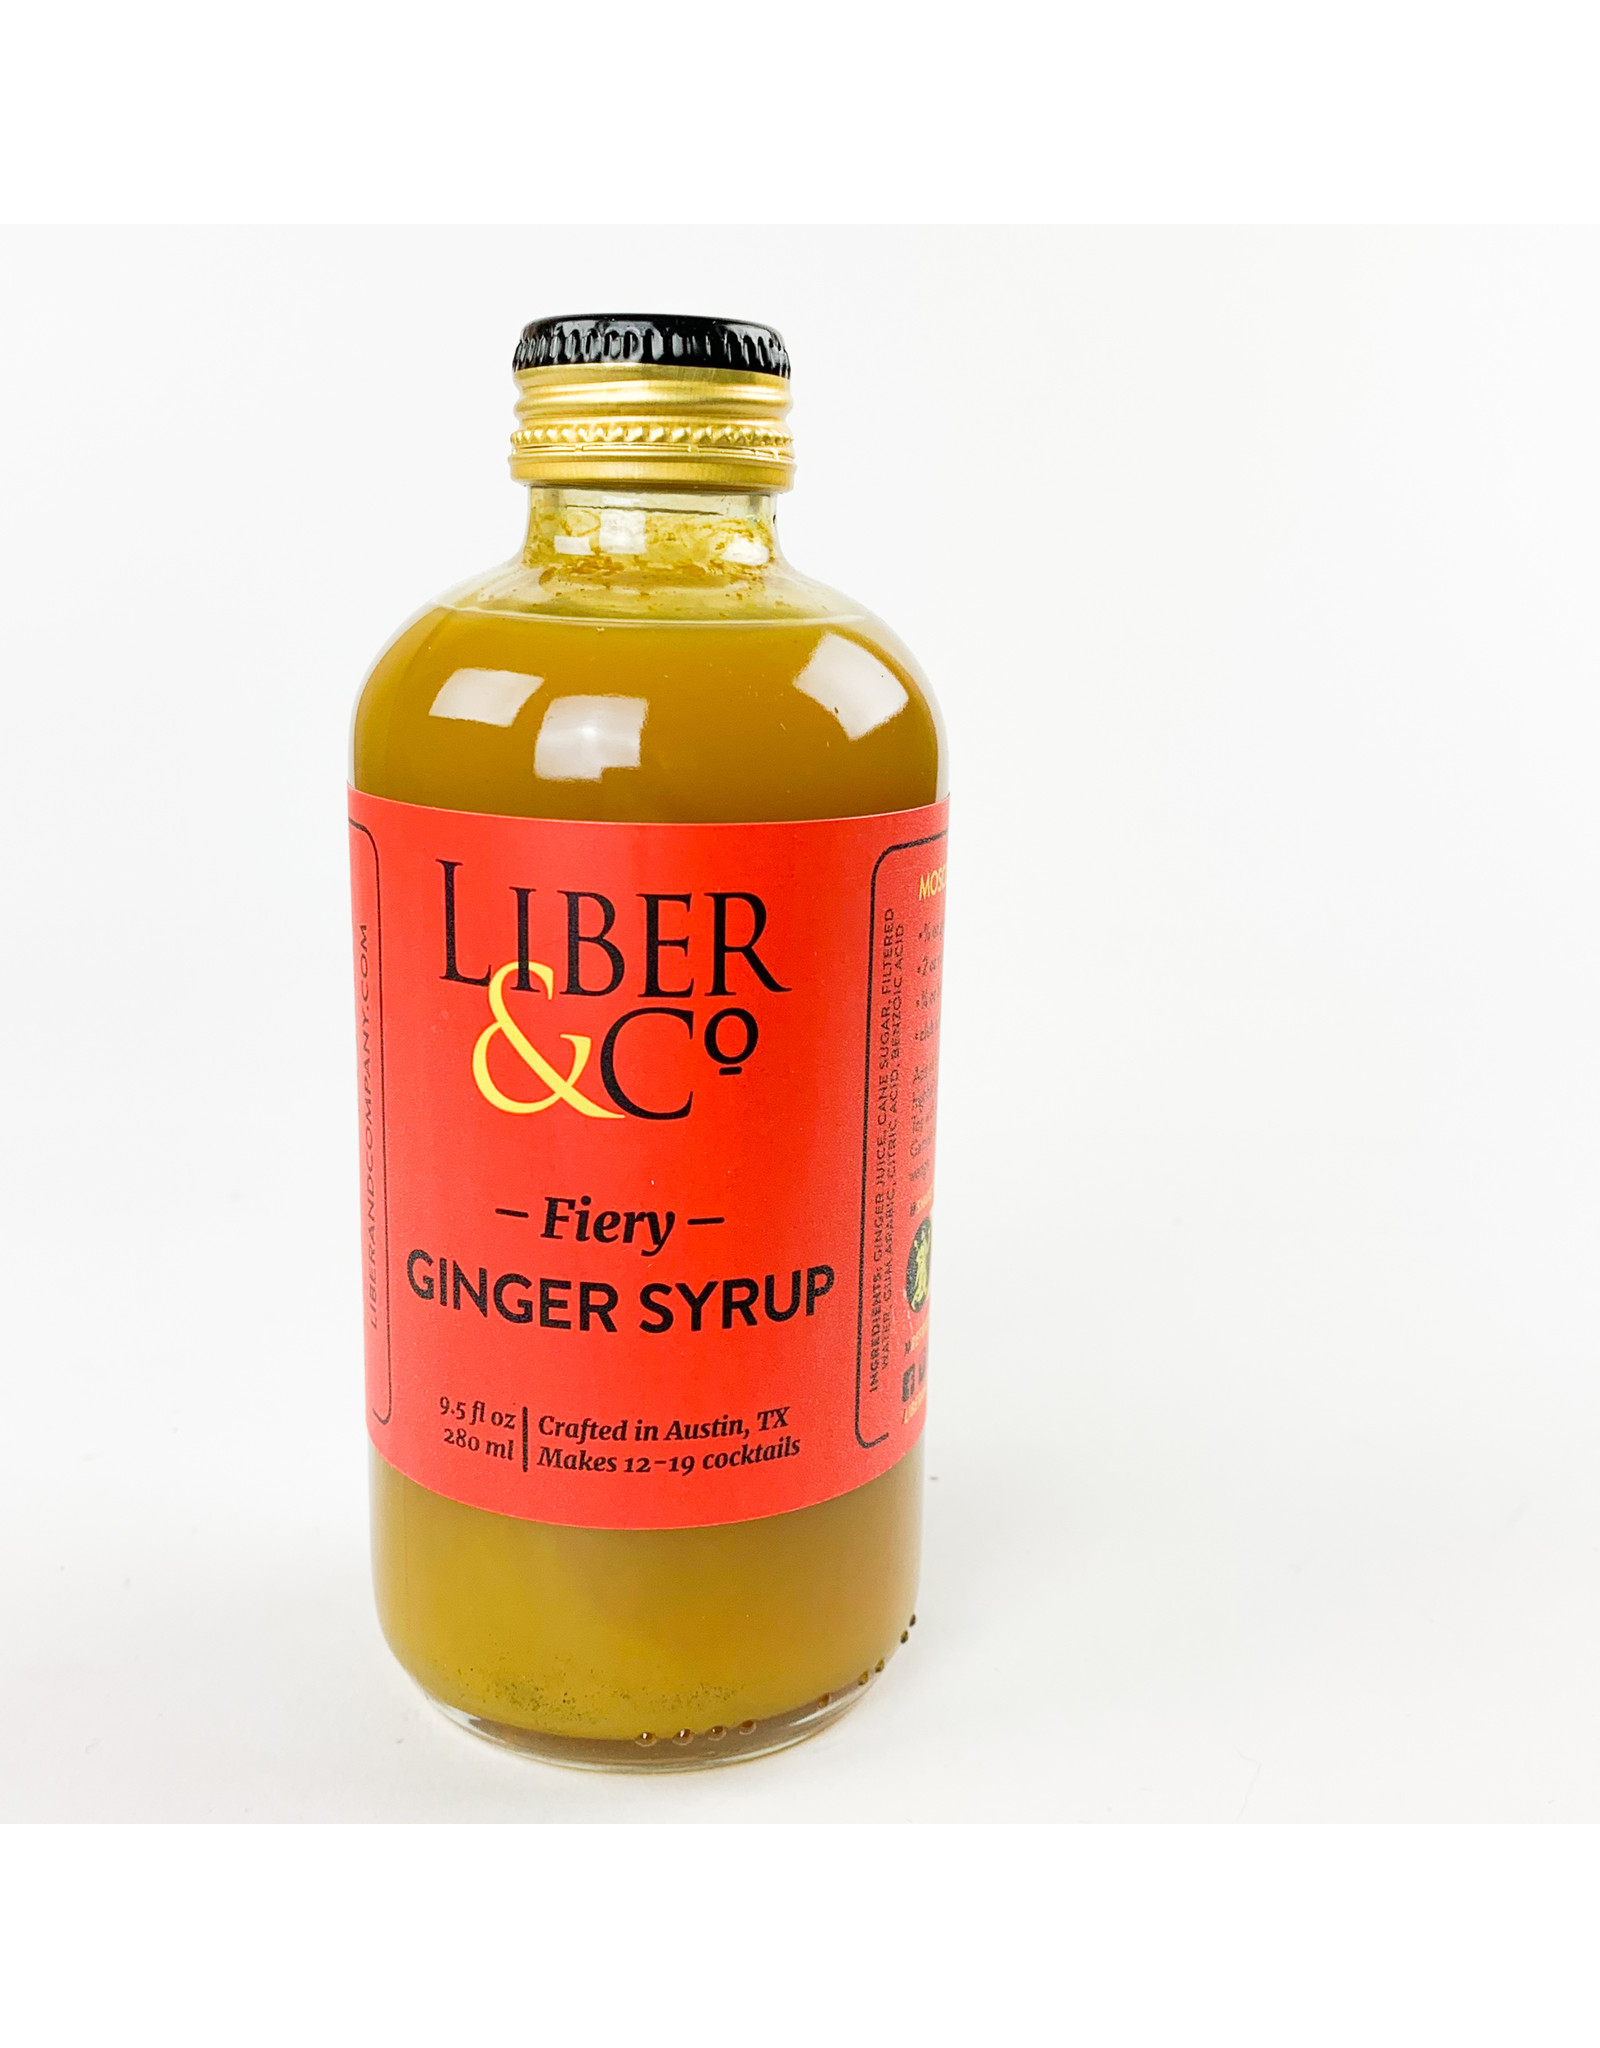 Liber and Co Ginger Cocktail Syrup